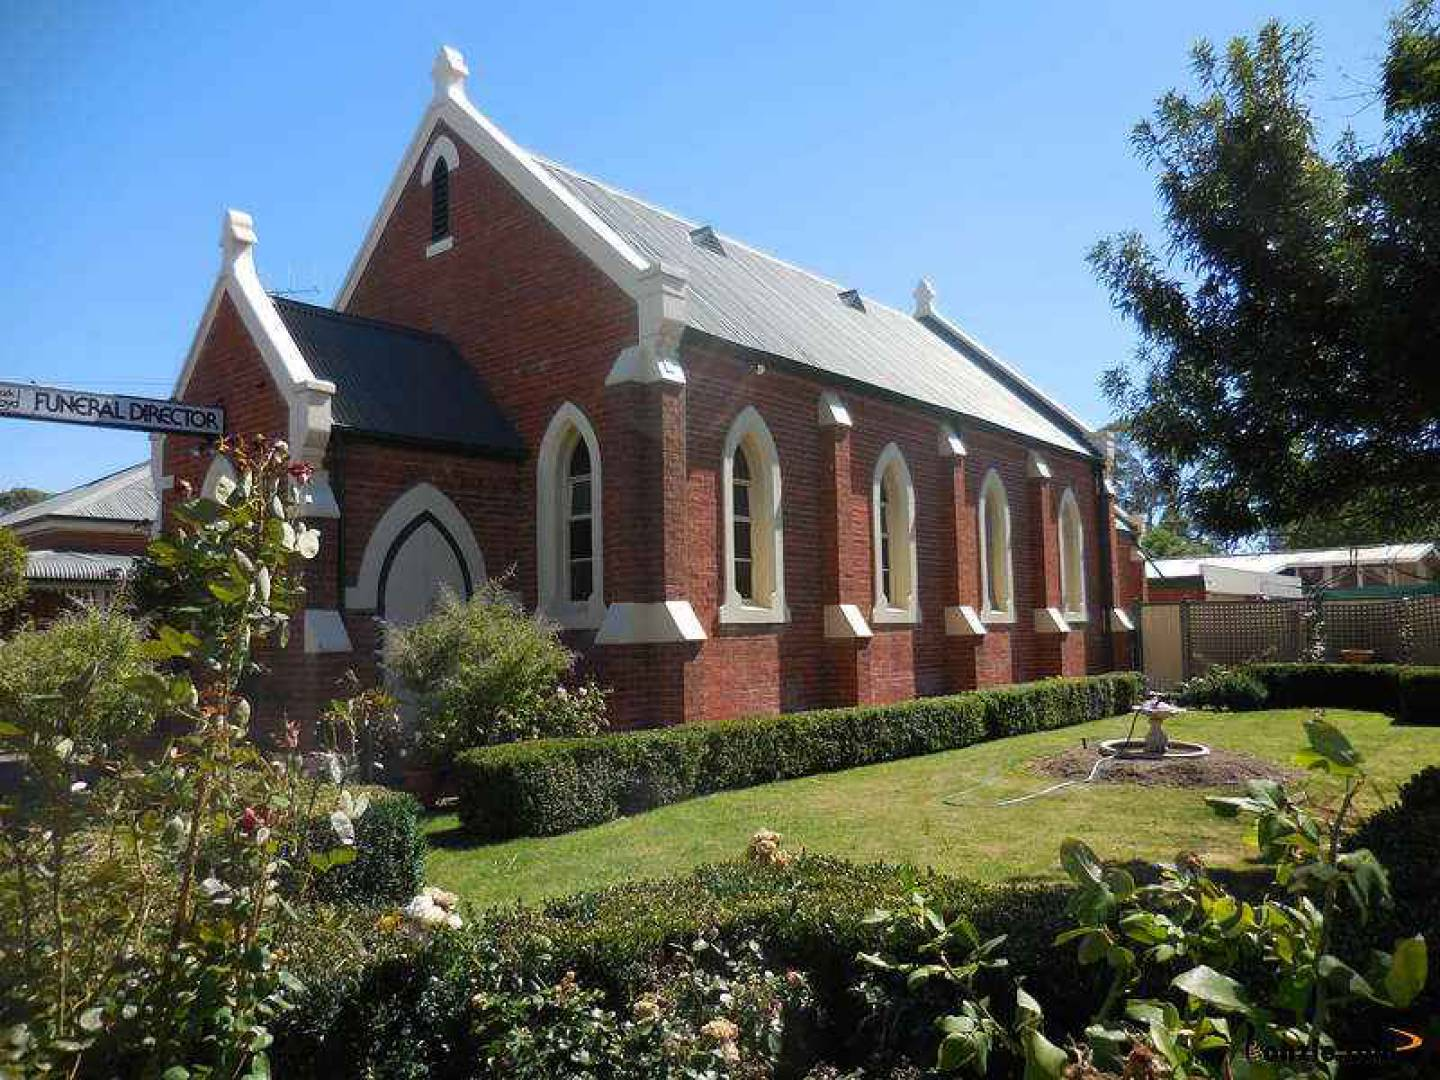 Euroa Methodist Church - Former